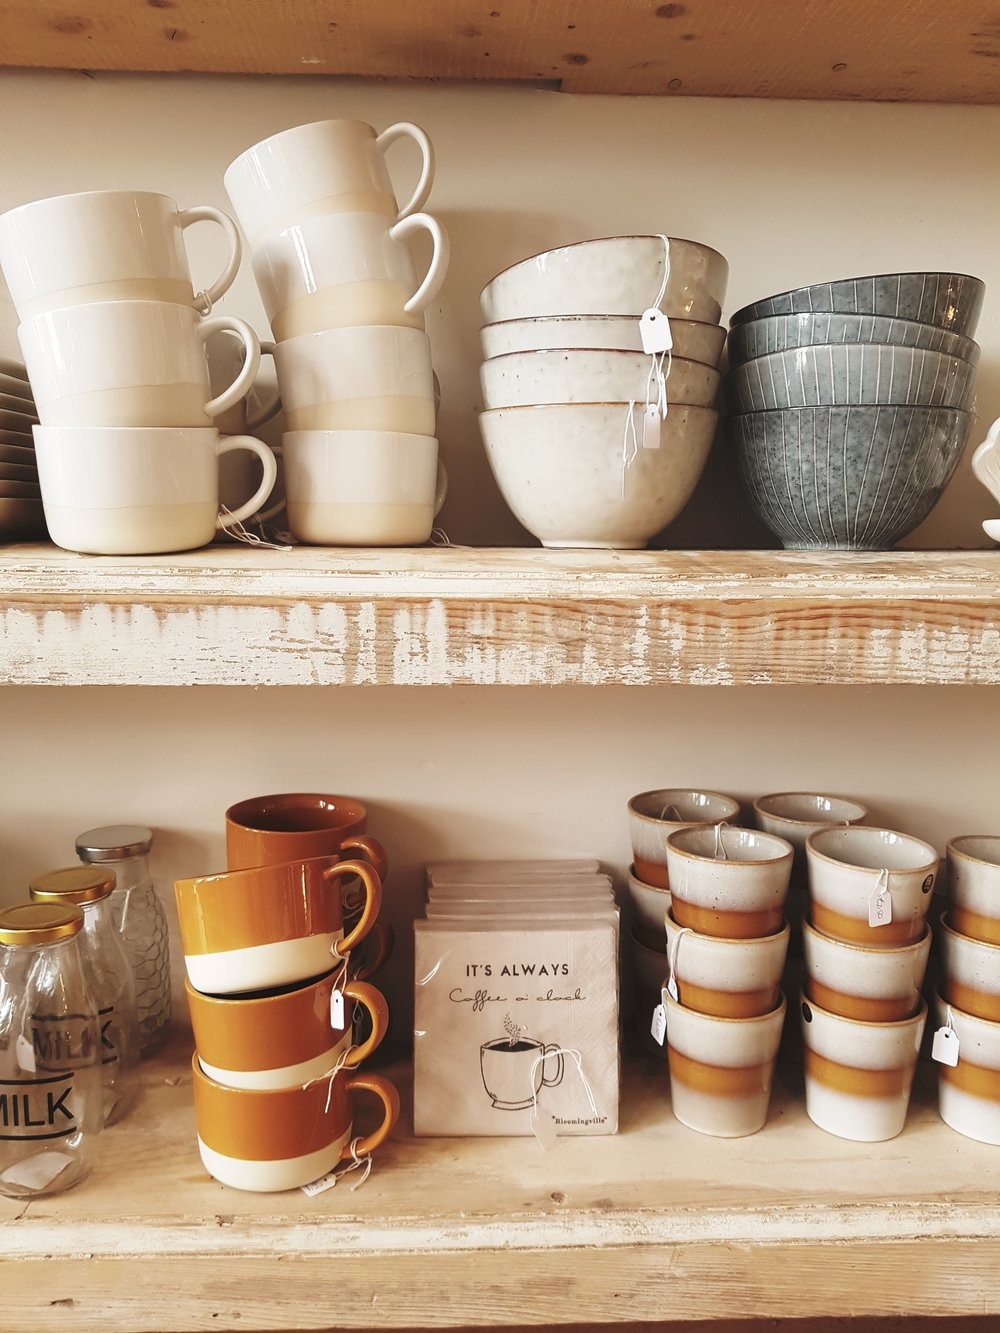 And there was lots of lovely home ware to tempt you over your cup of tea